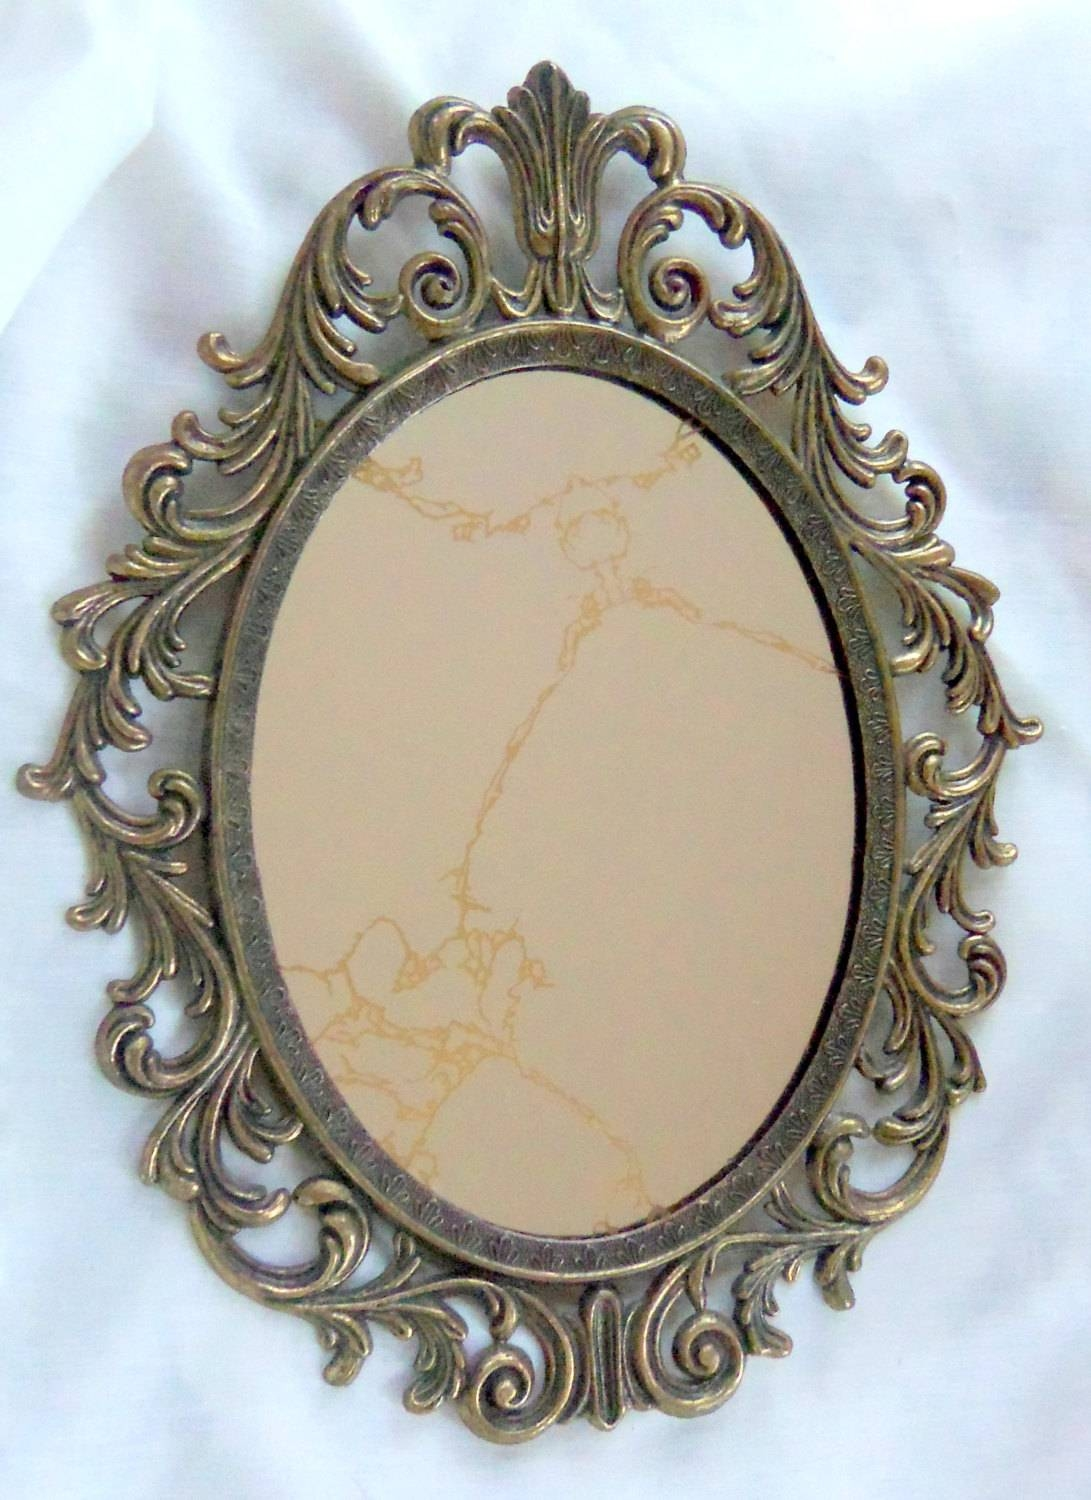 Classic Antique Mirrors Images – Reverse Search Intended For Antique Mirrors (View 23 of 25)